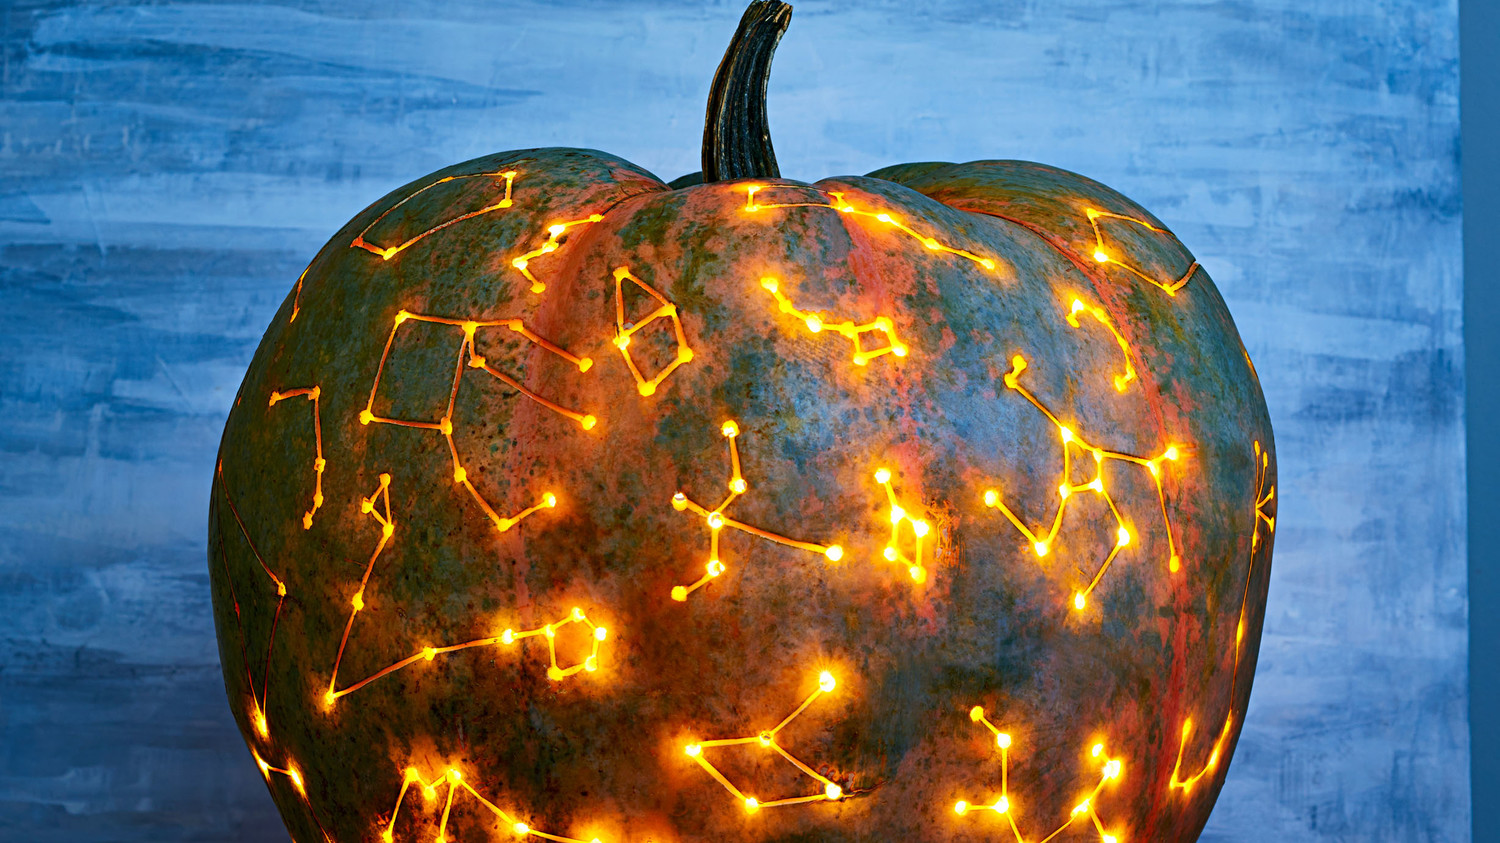 Constellation art pumpkin